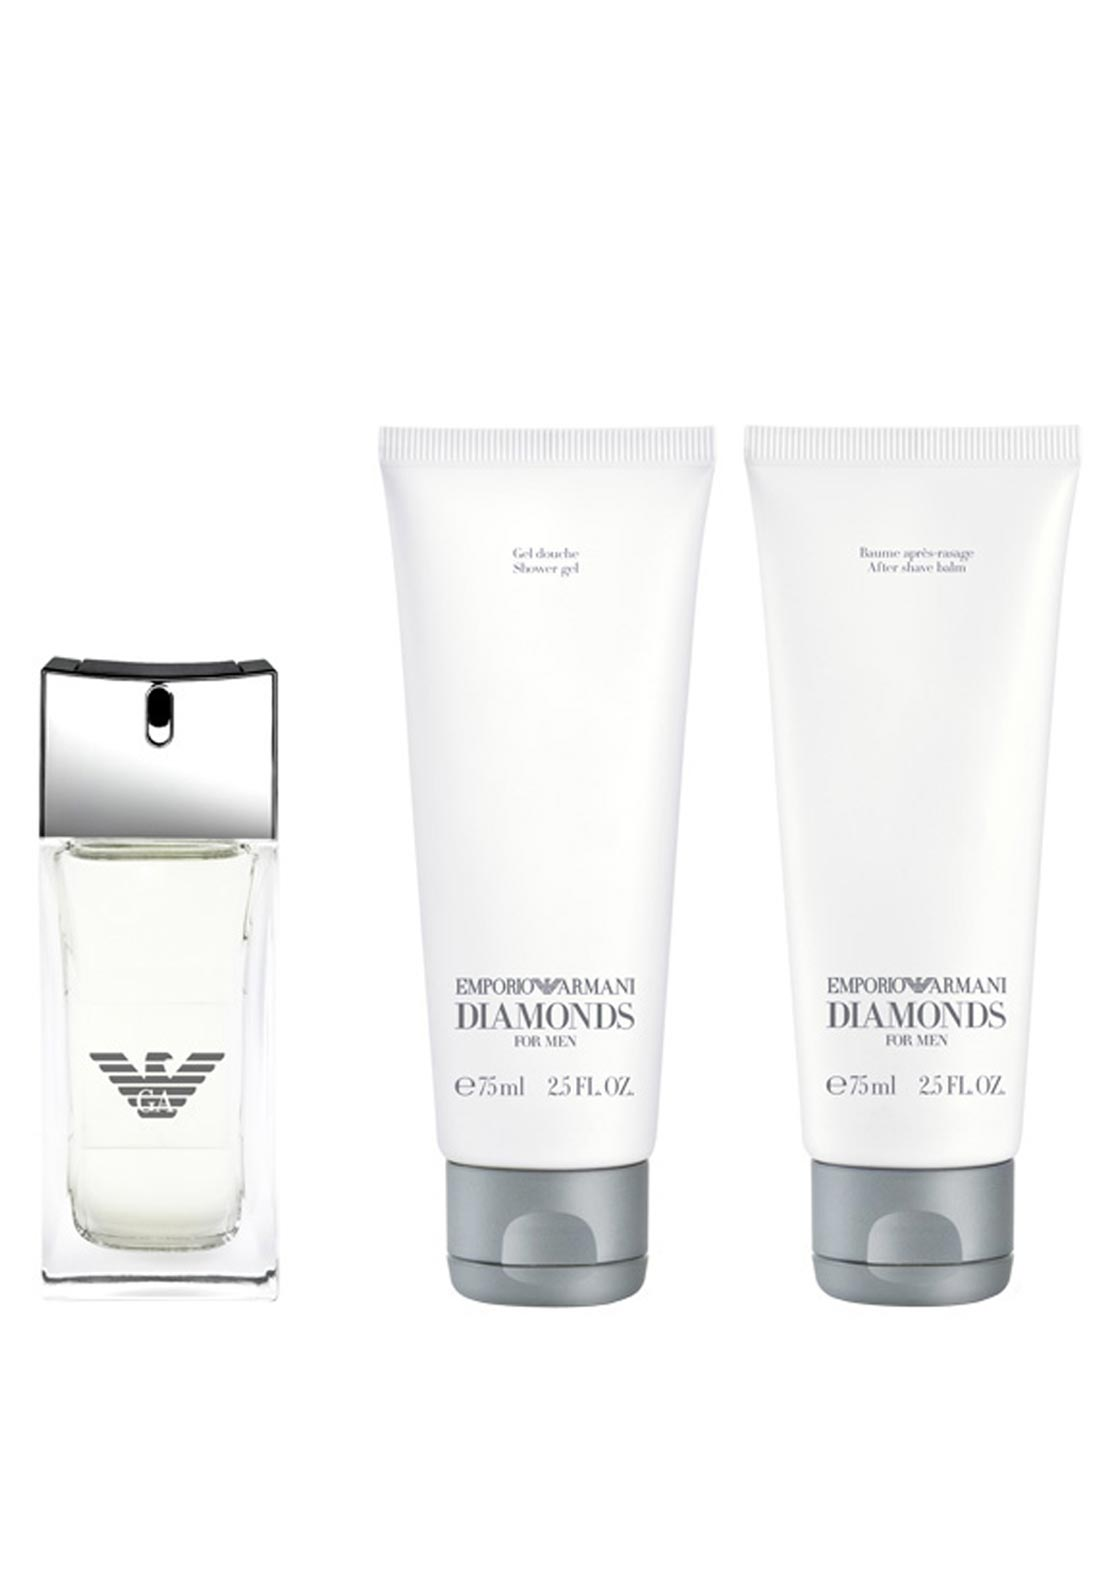 Emporio Armani Diamonds Eau De Toilette for Men Gift Set, 50ml